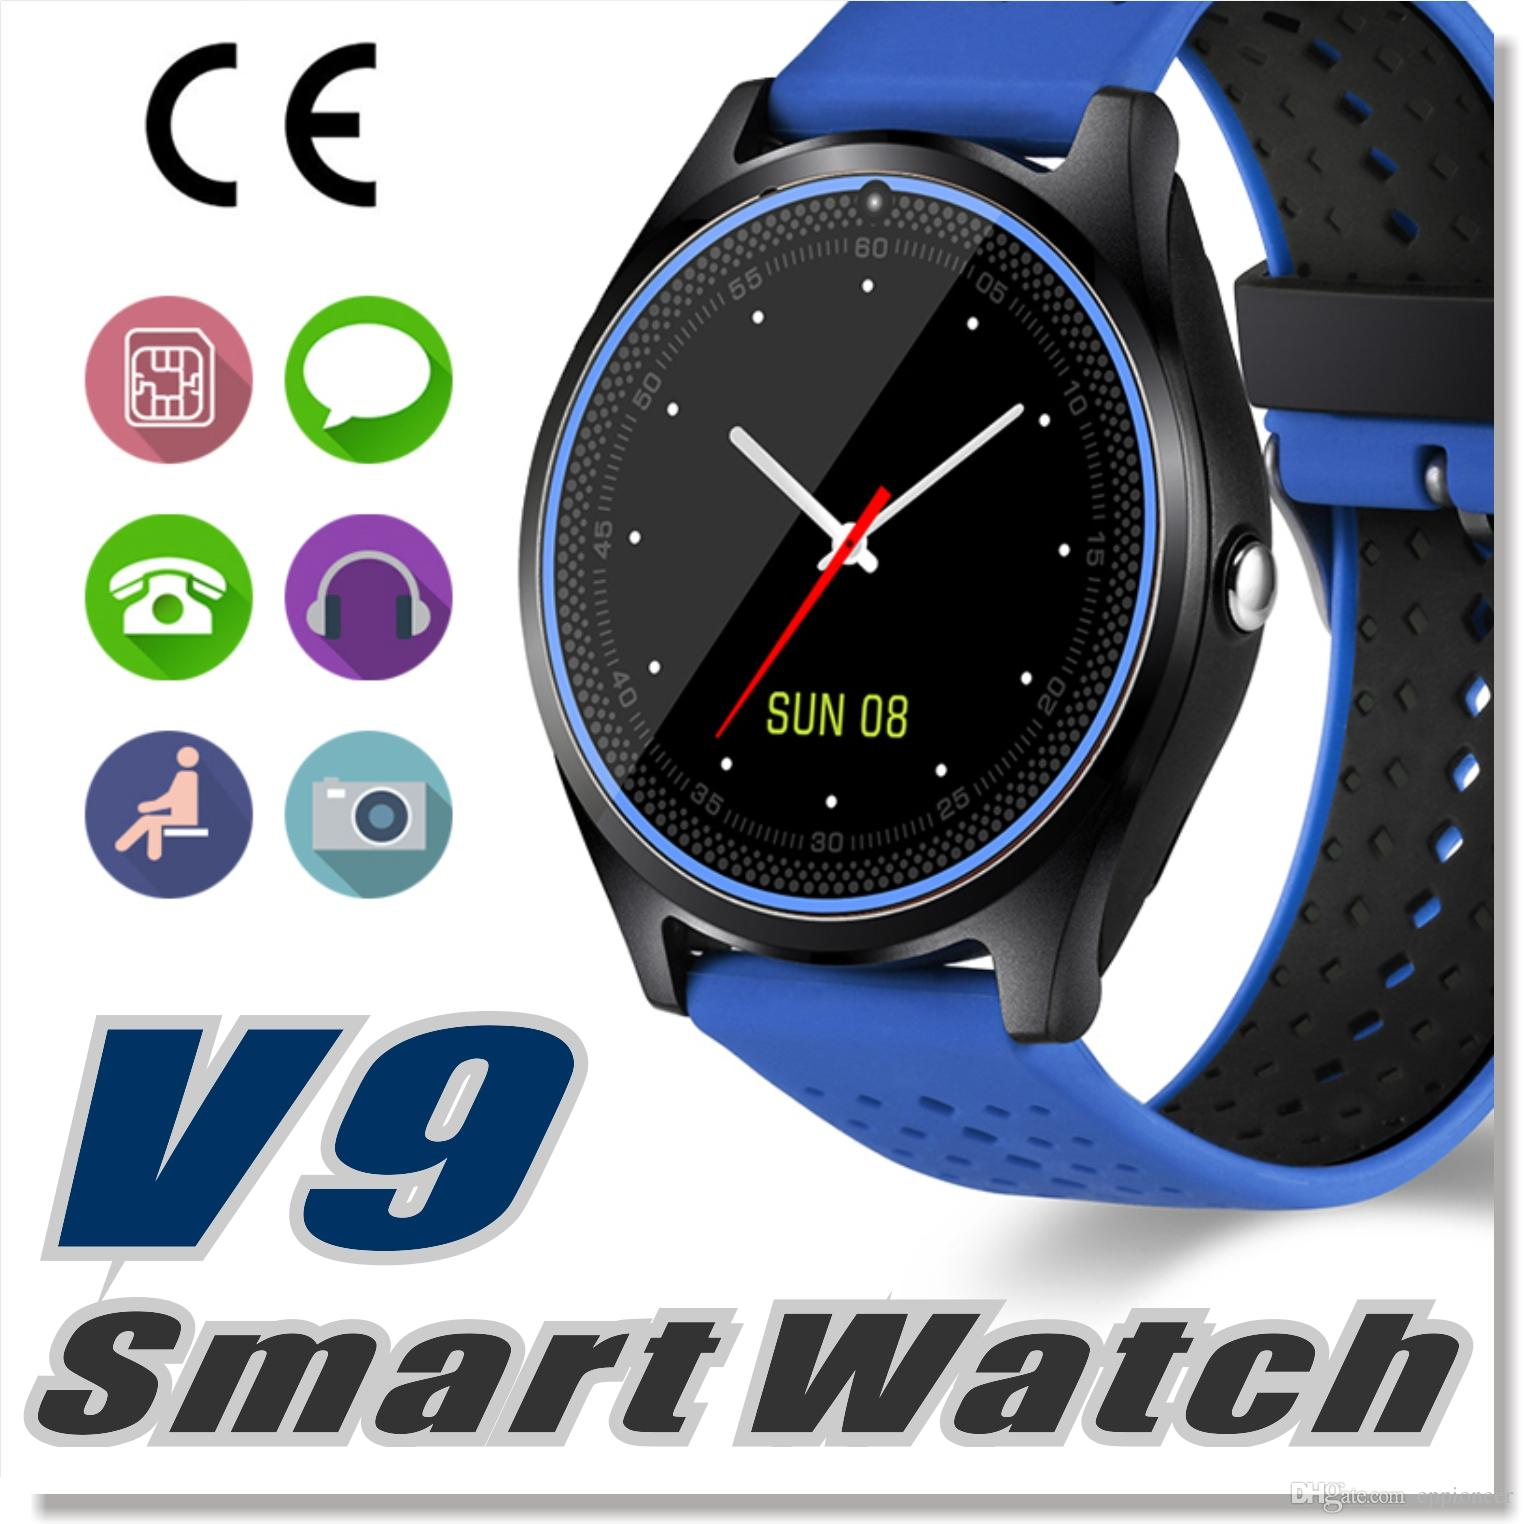 V9 Smartwatch Android V8 Dz09 U8 Samsung Smart Watches Sim Intelligent Mobile Phone Watch Can Record The Sleep State Smart Watch Kids Smart Watch Phone Men